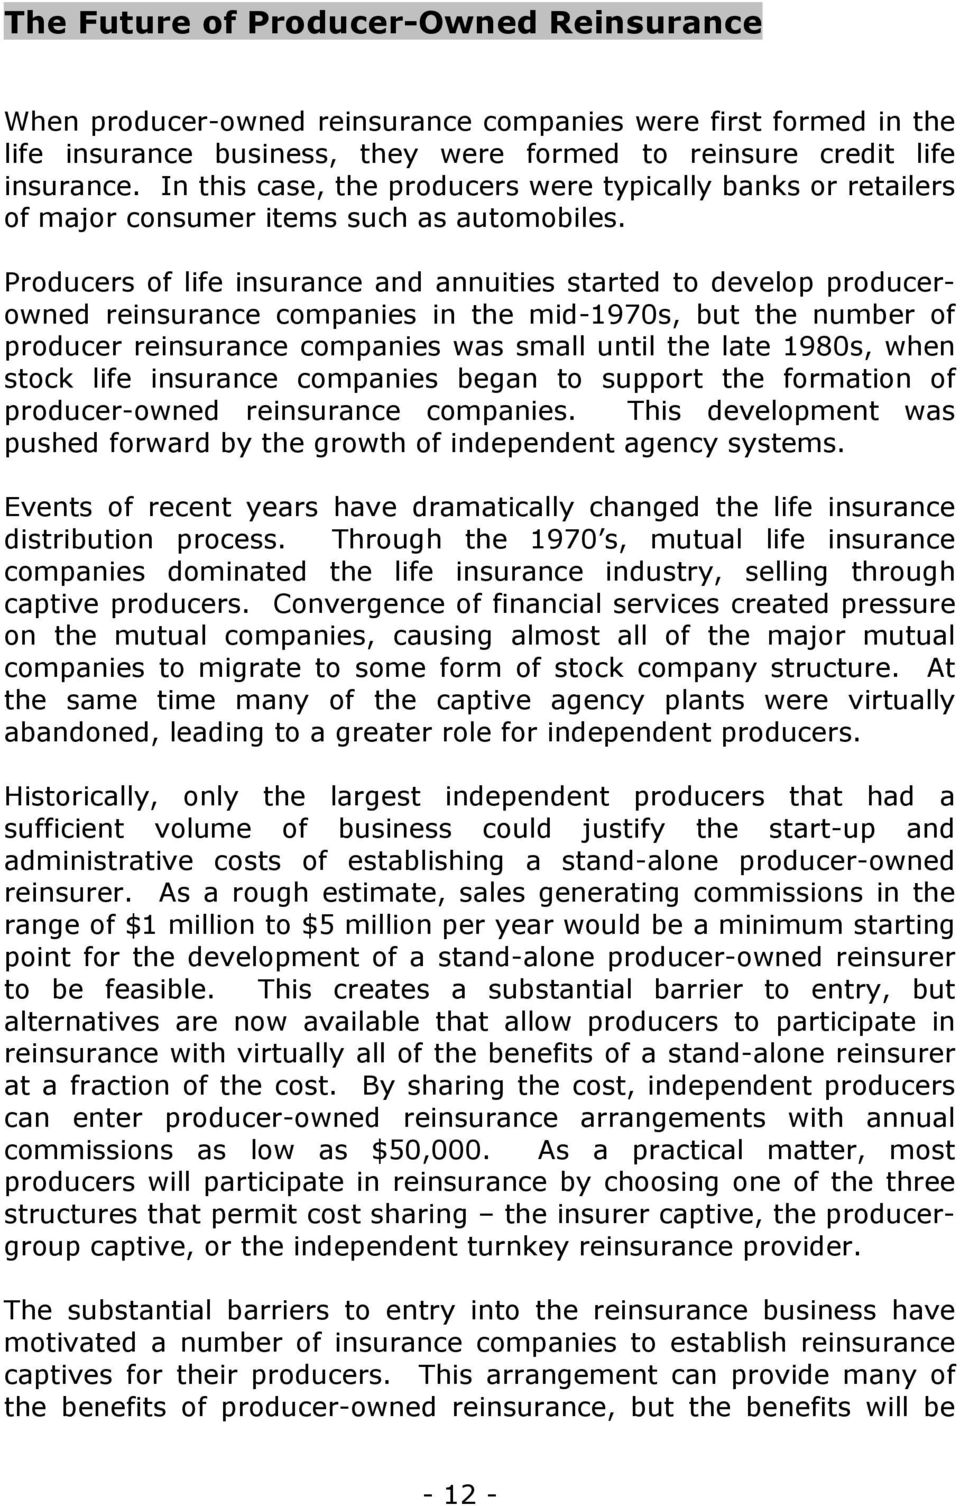 Producers of life insurance and annuities started to develop producerowned reinsurance companies in the mid-1970s, but the number of producer reinsurance companies was small until the late 1980s,